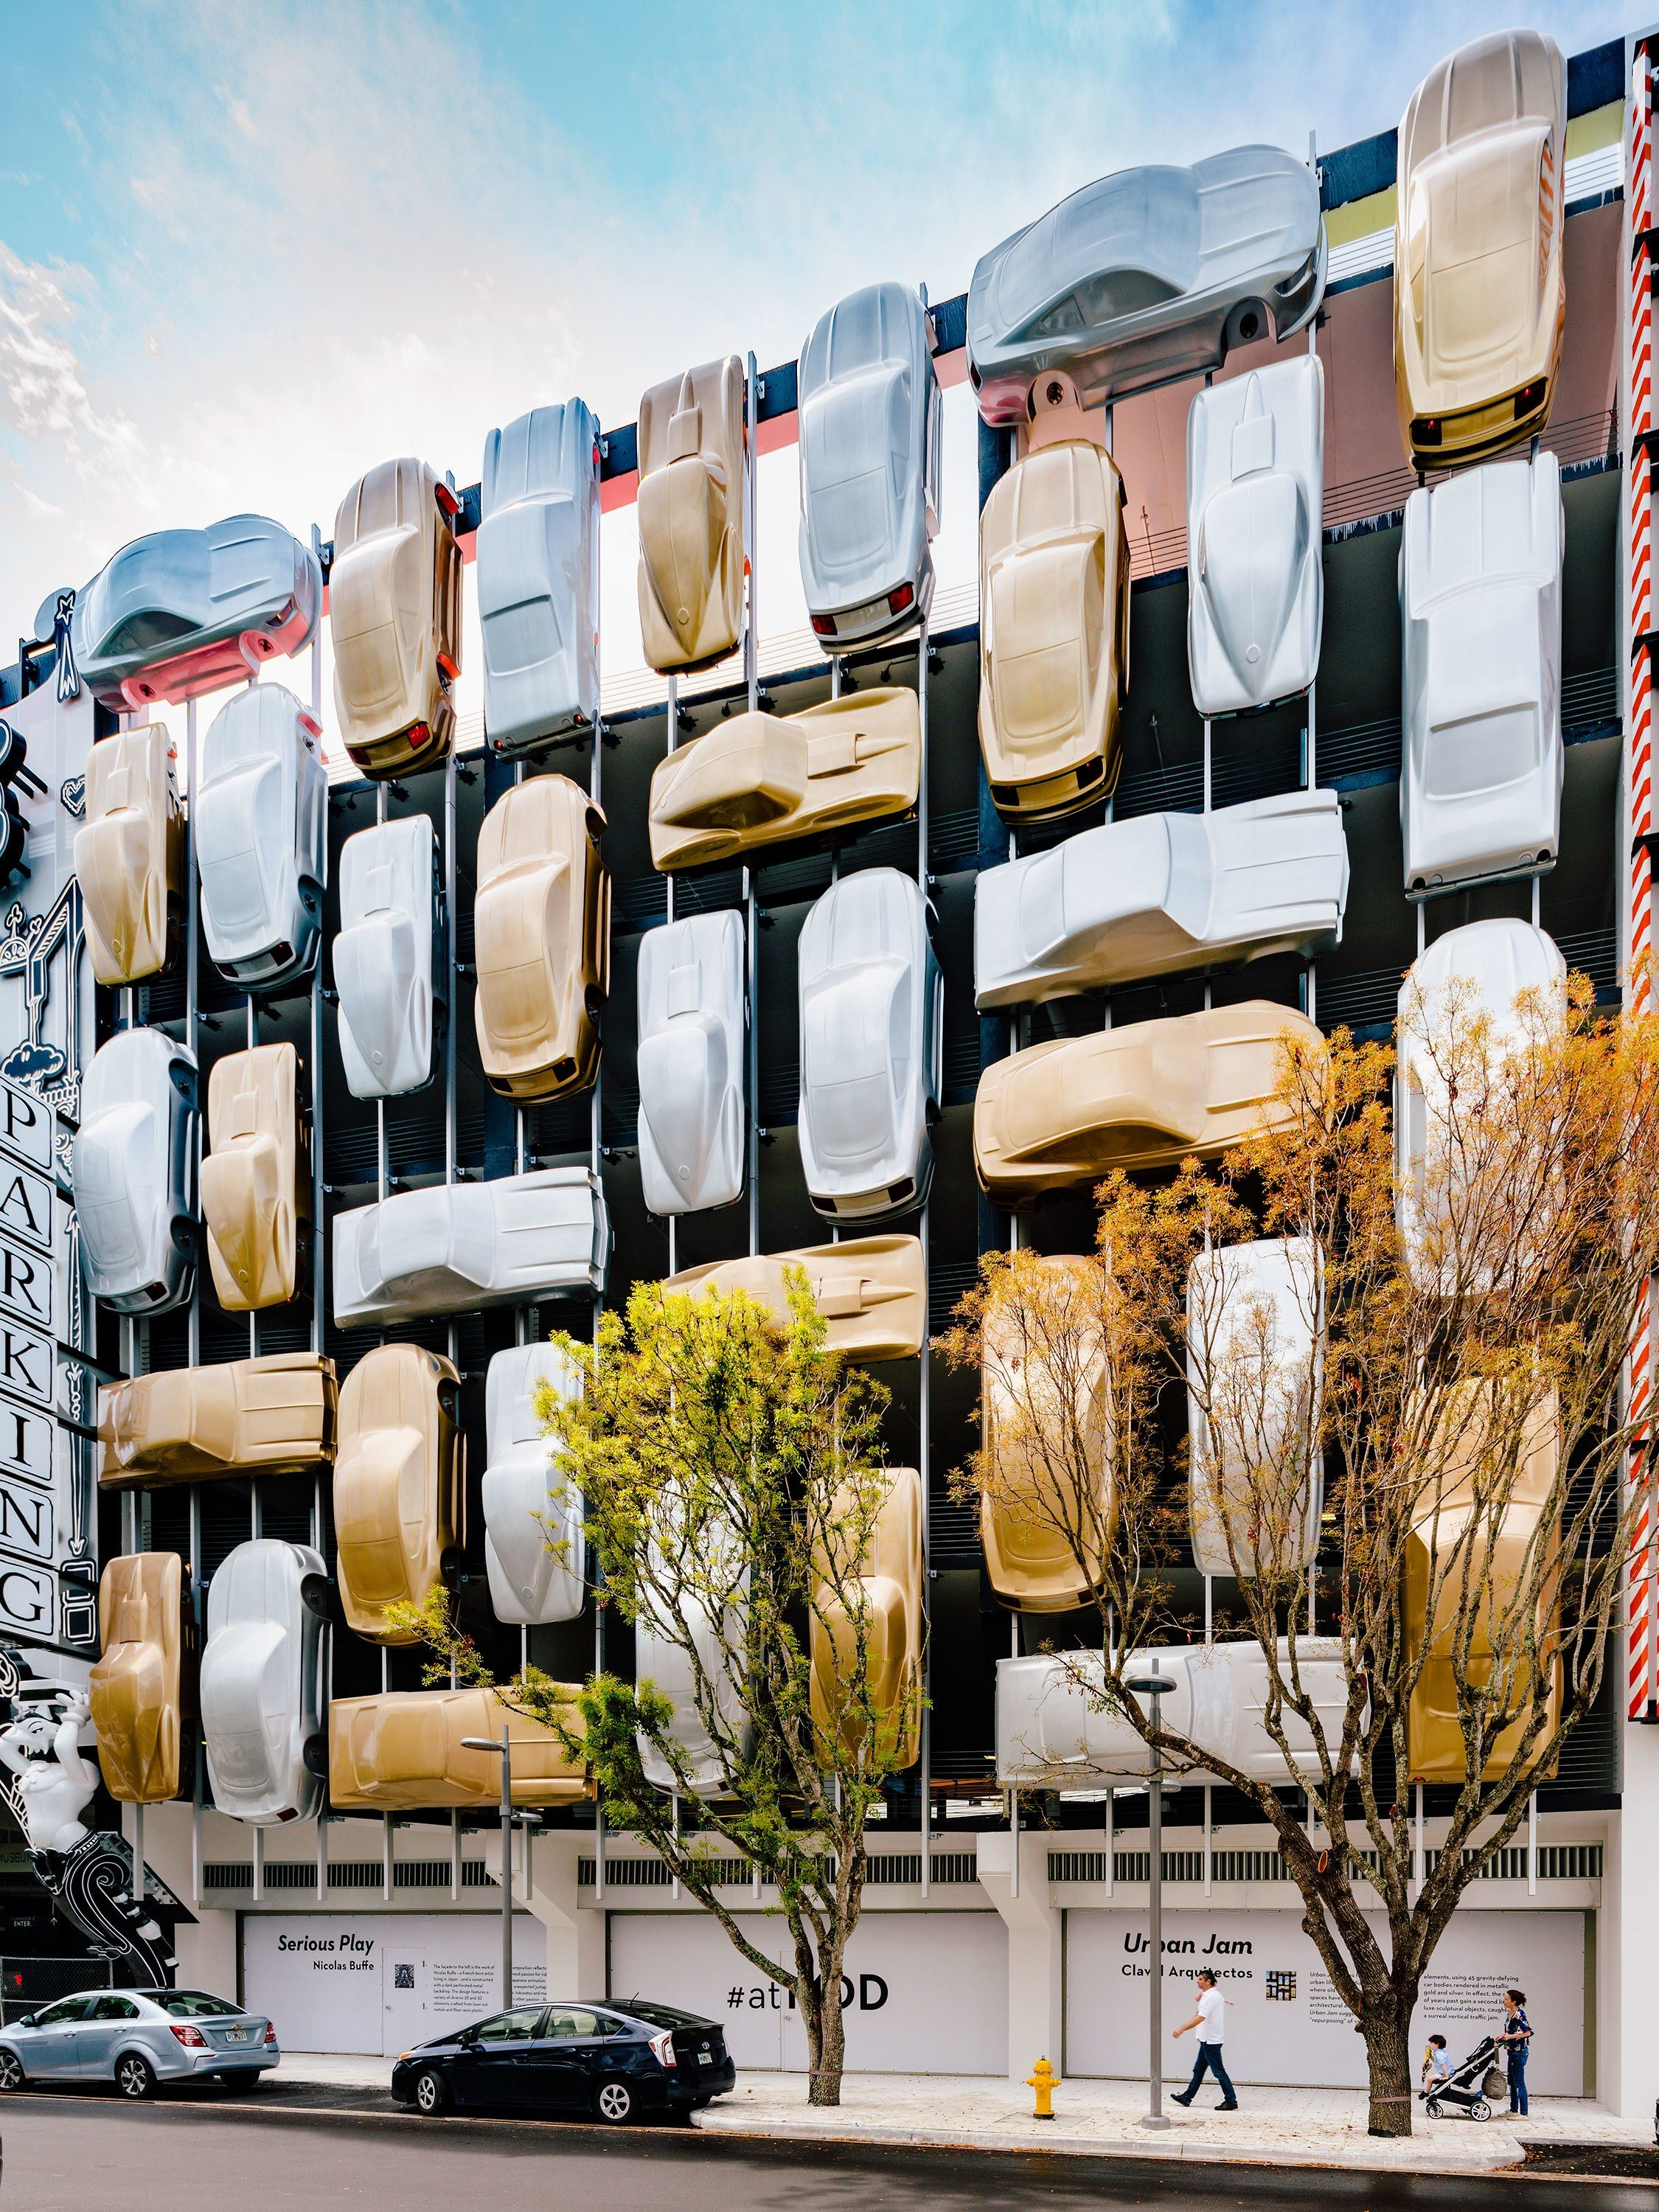 Can A Parking Garage Be A Work Of Art In Miami It Can Public Art Installation Art Miami Design